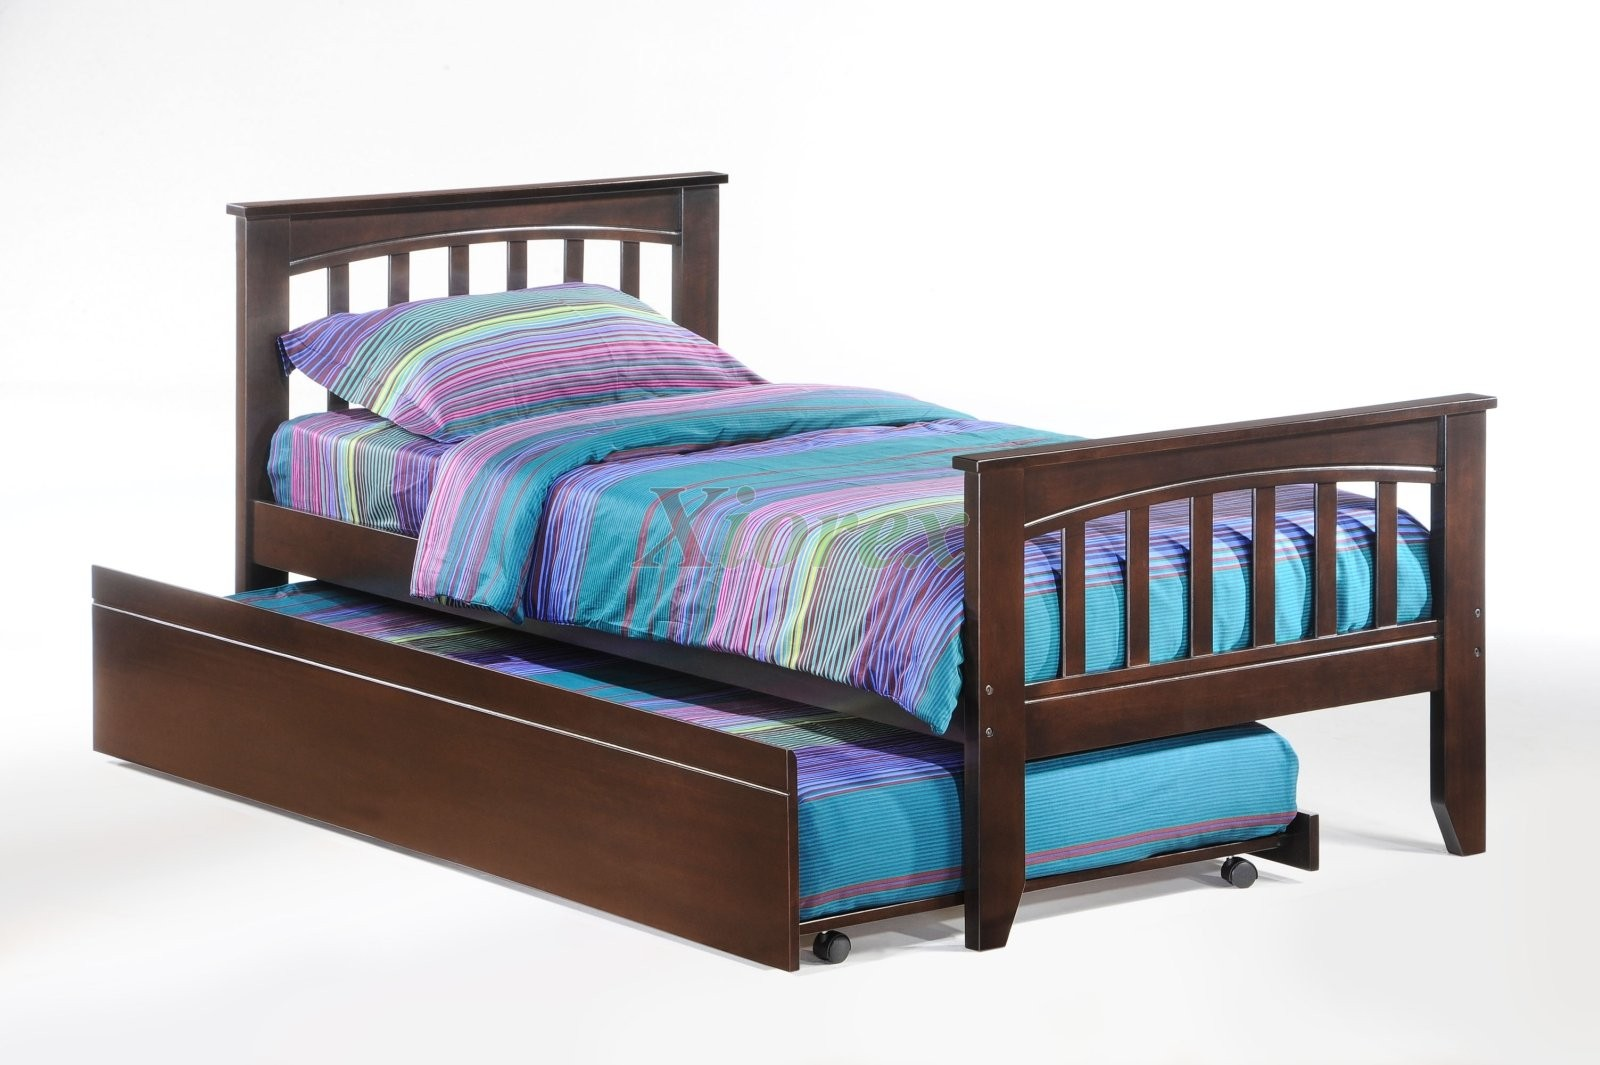 Youth Bedroom Sets Night & Day Sasparilla Bed Sets for